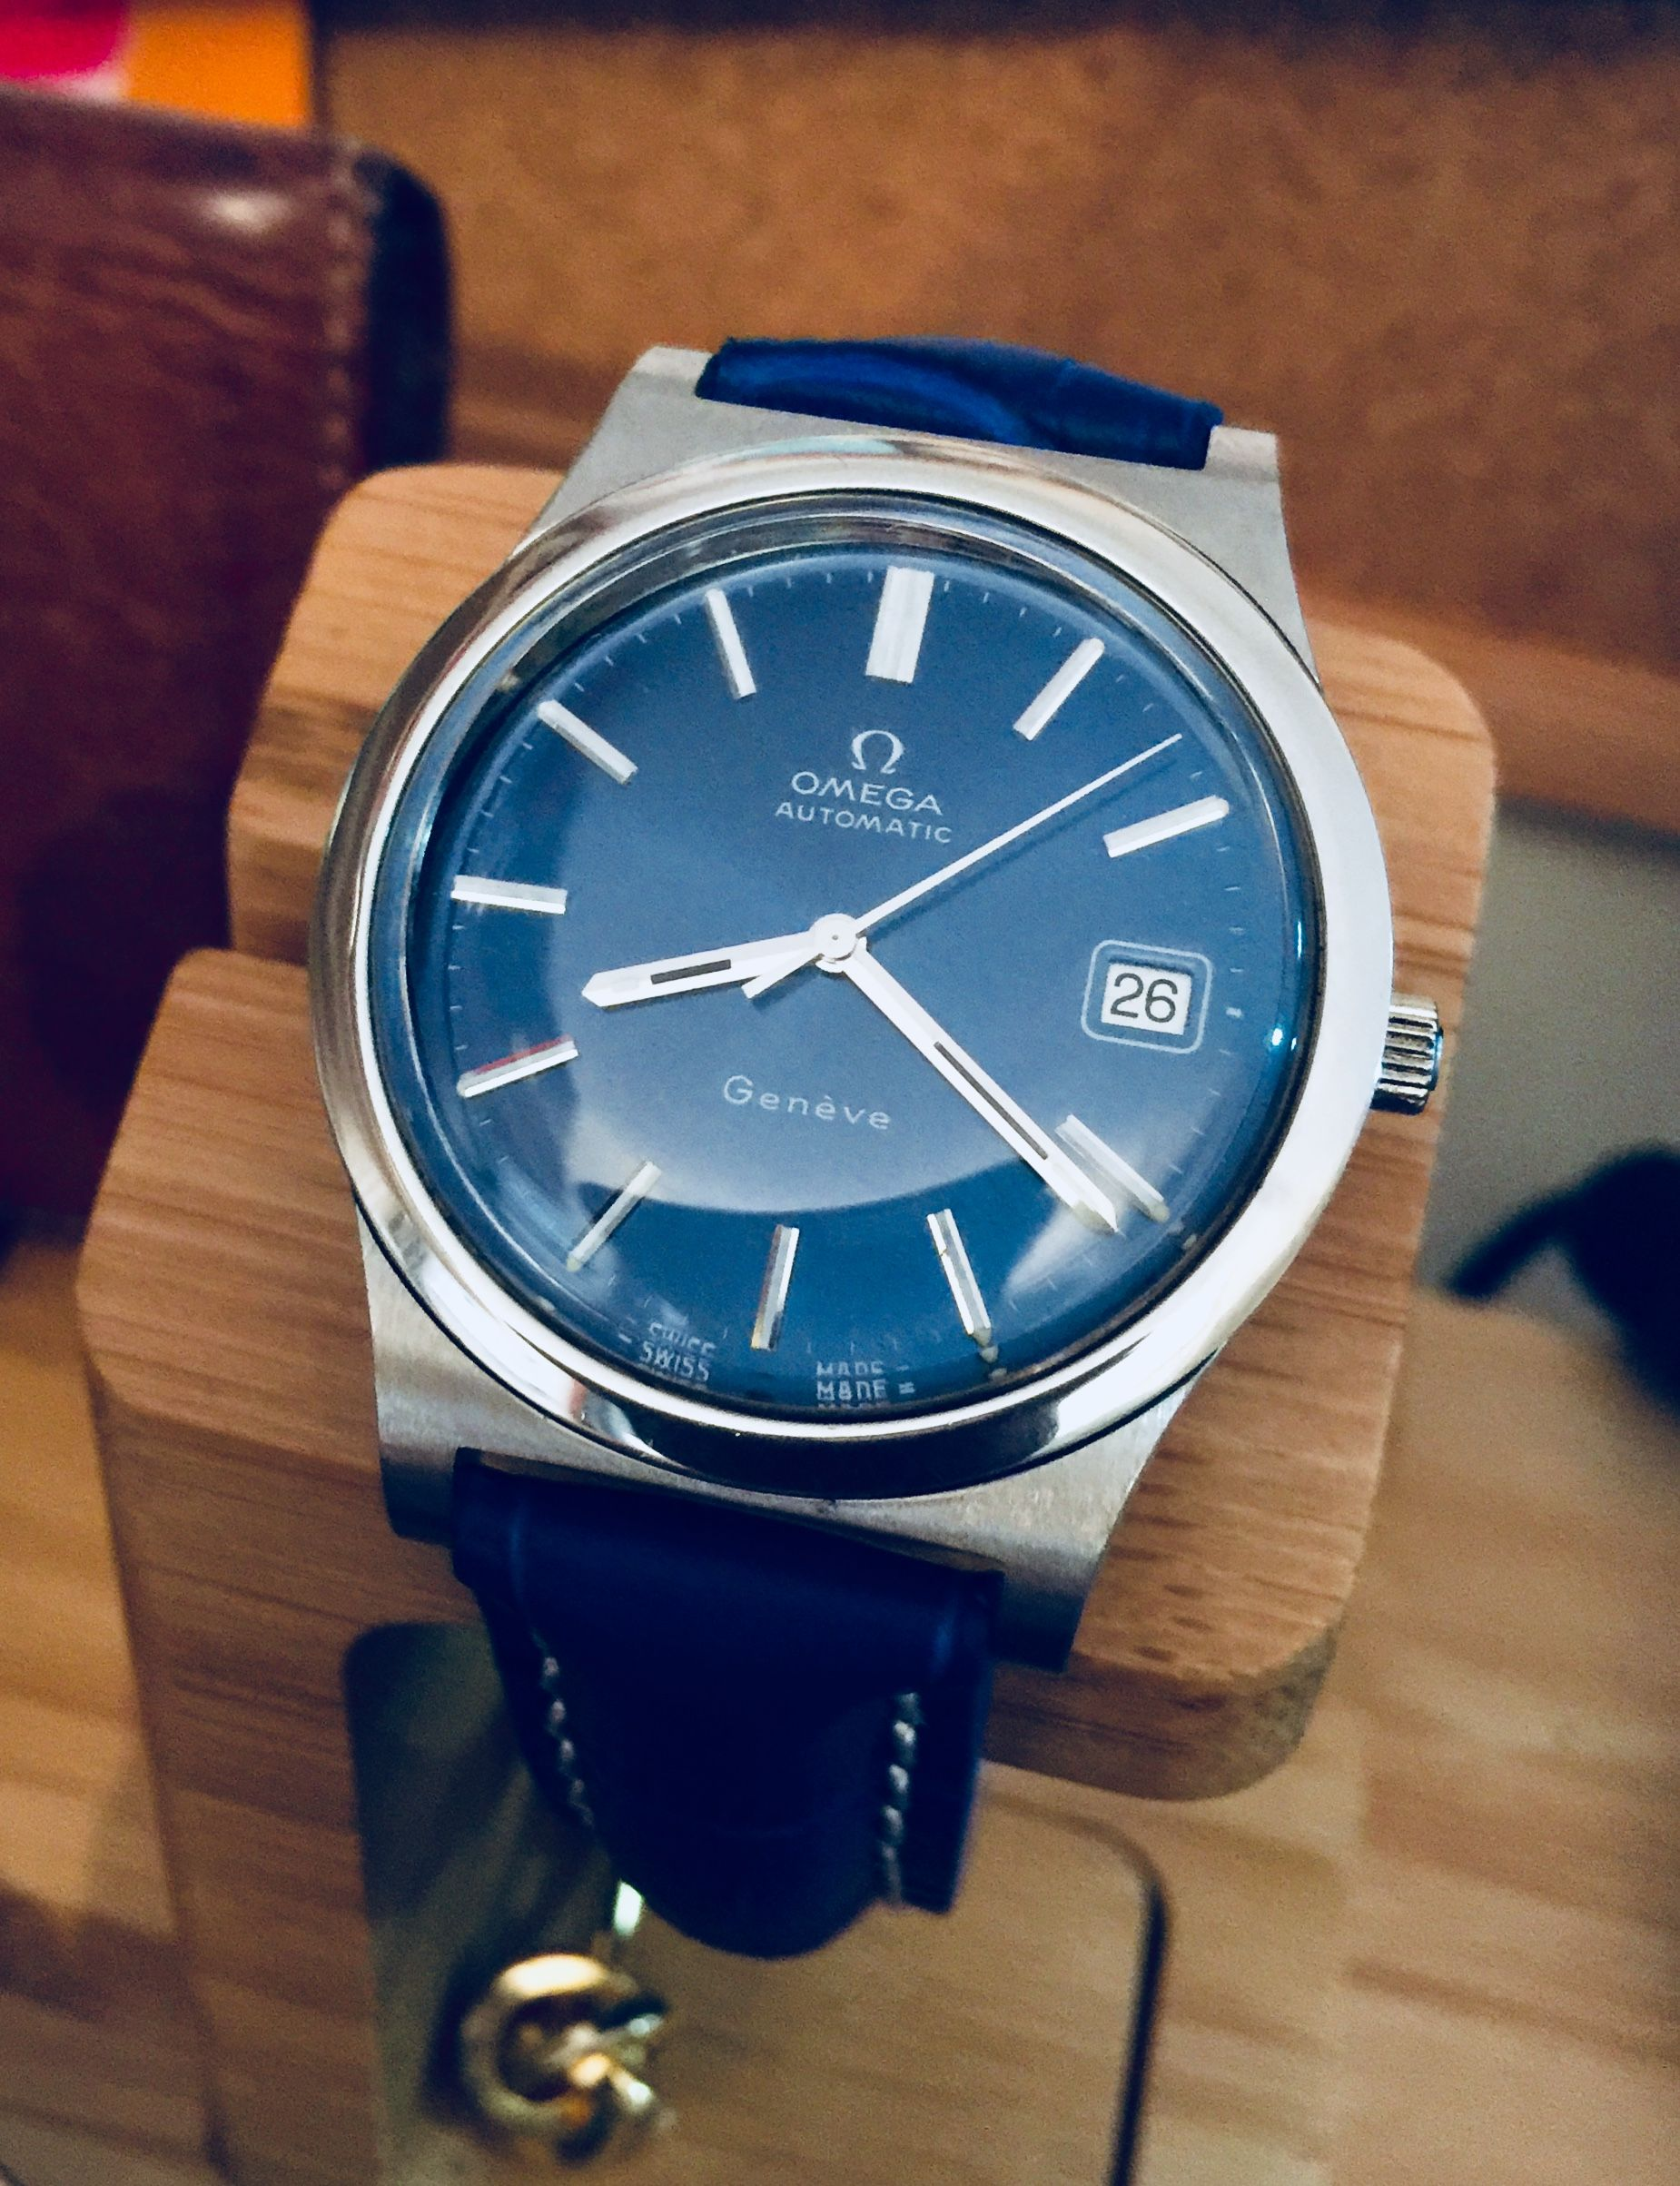 c4f89d4a0ff Omega men s Geneve blue dial 1970s Cal 1012 Armani Watches For Men